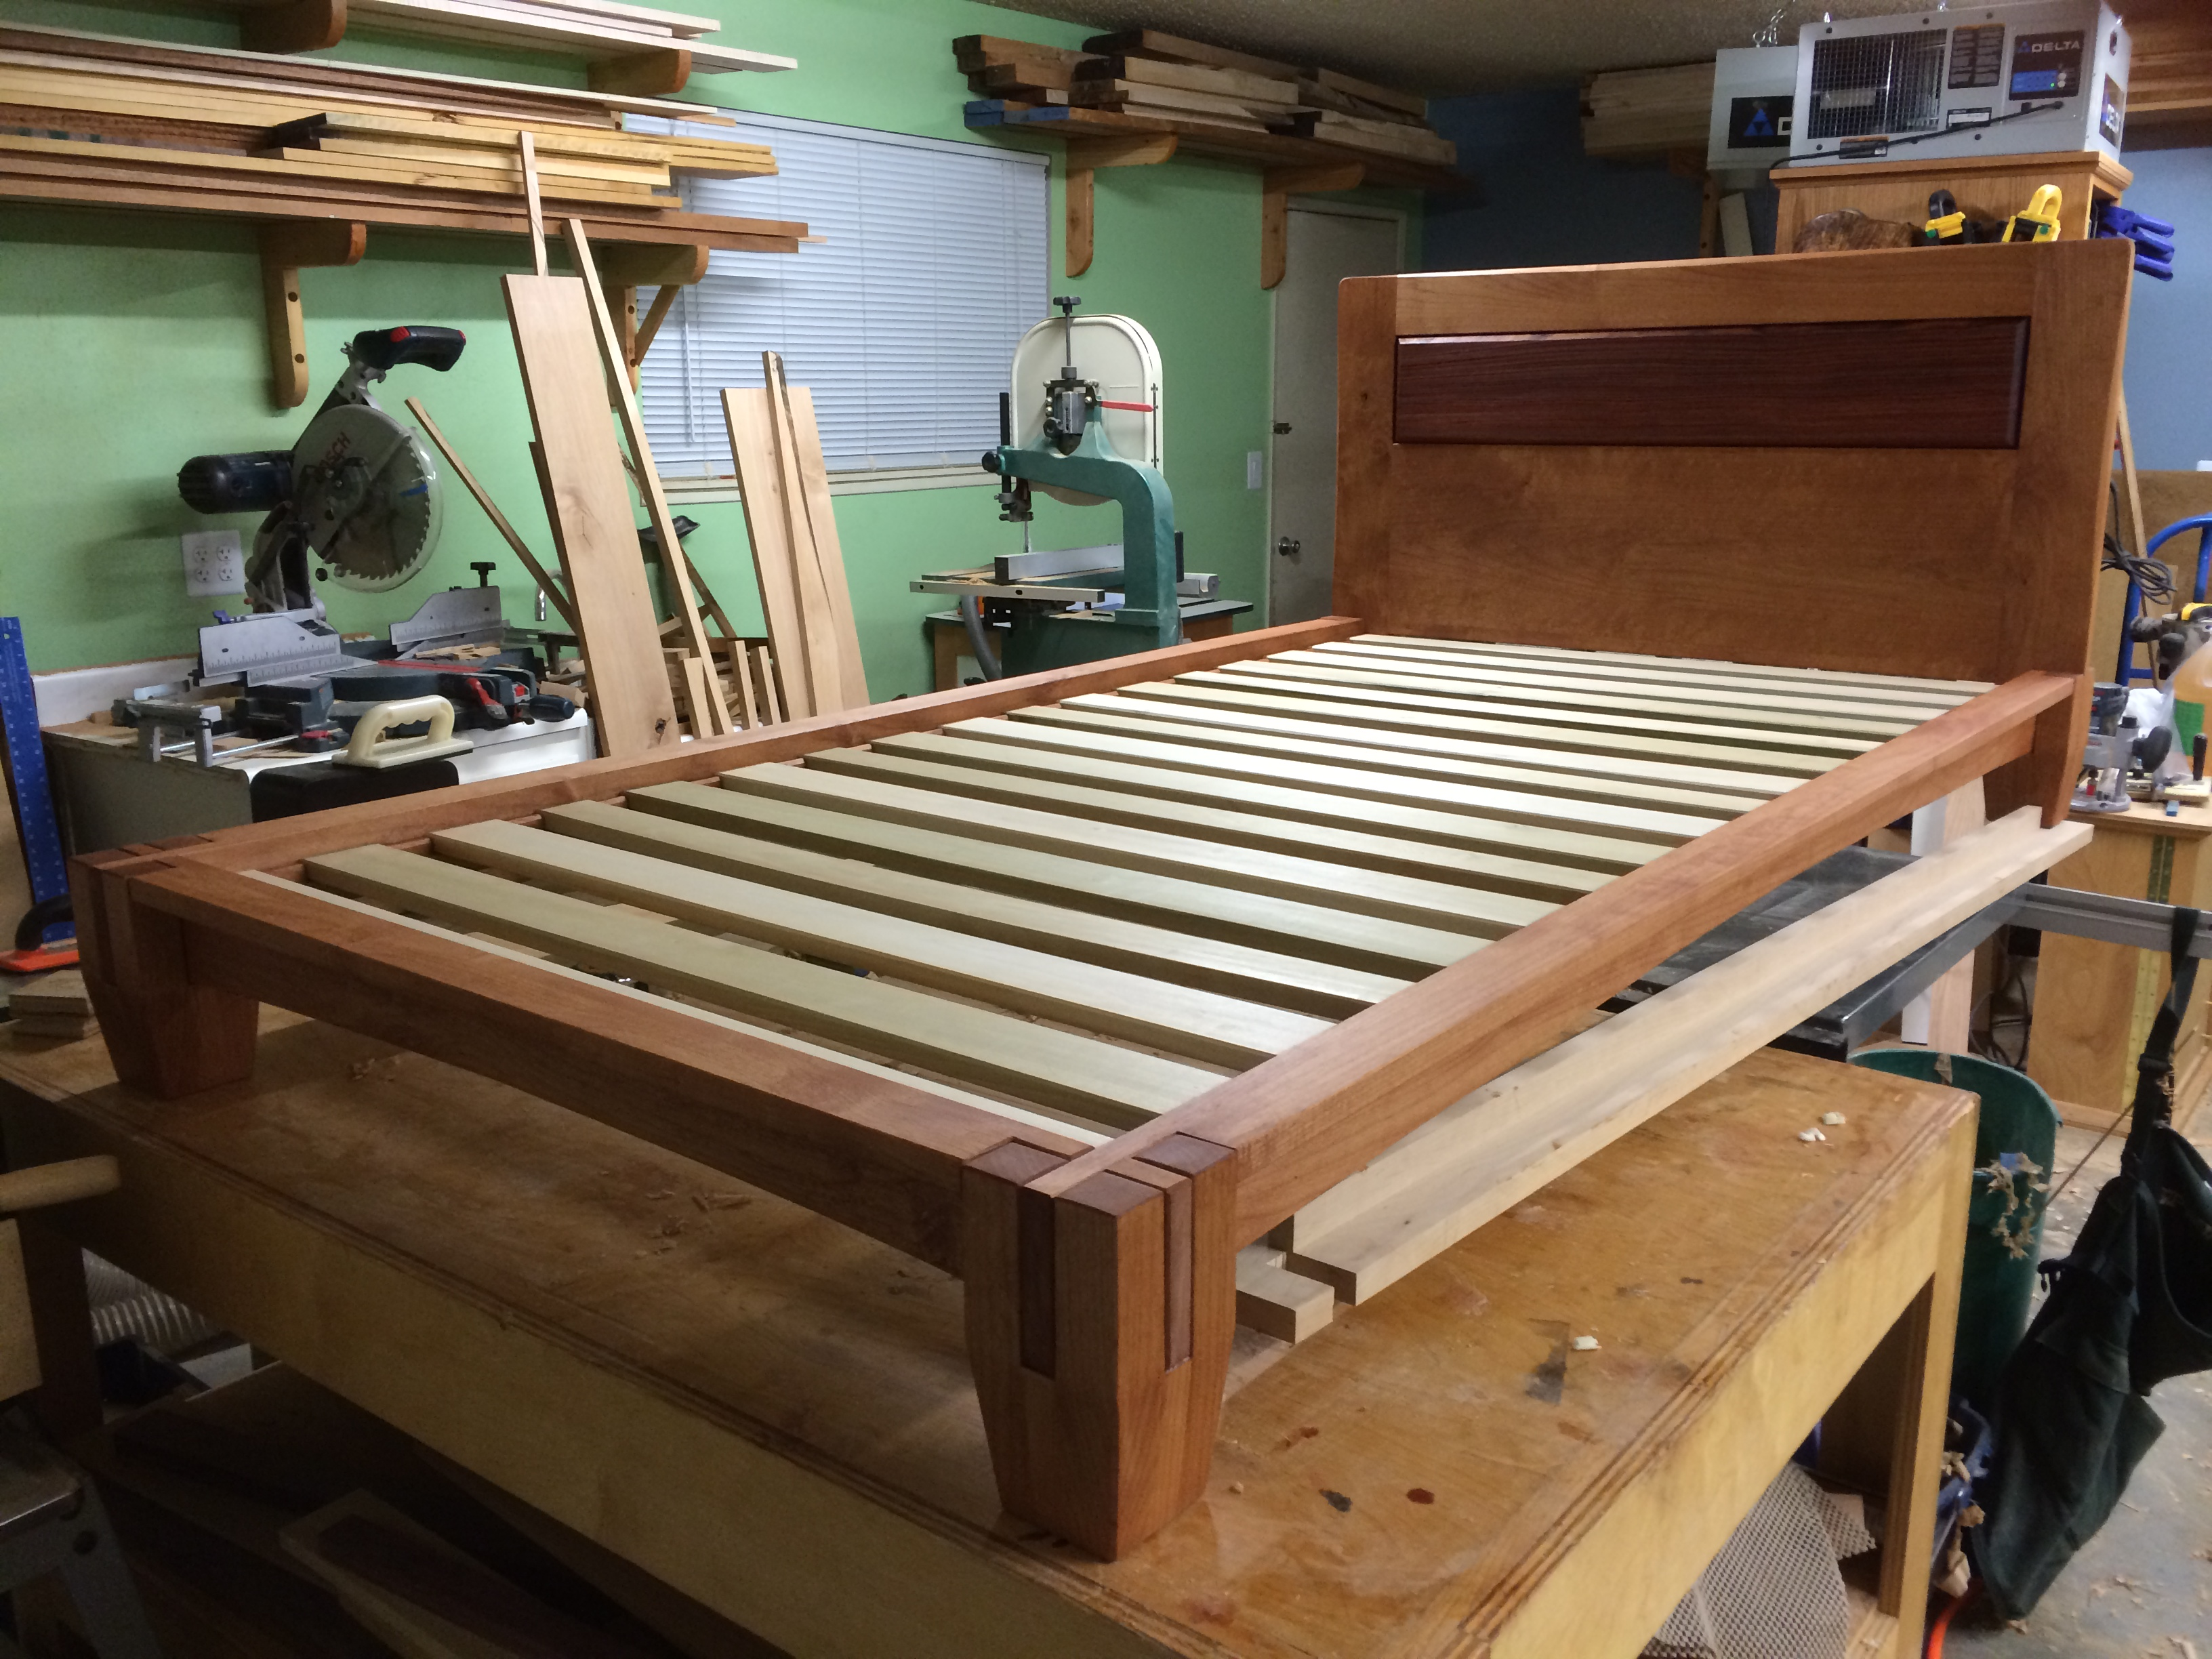 Diy Tatami Style Platform Bed With Downloadable Plans